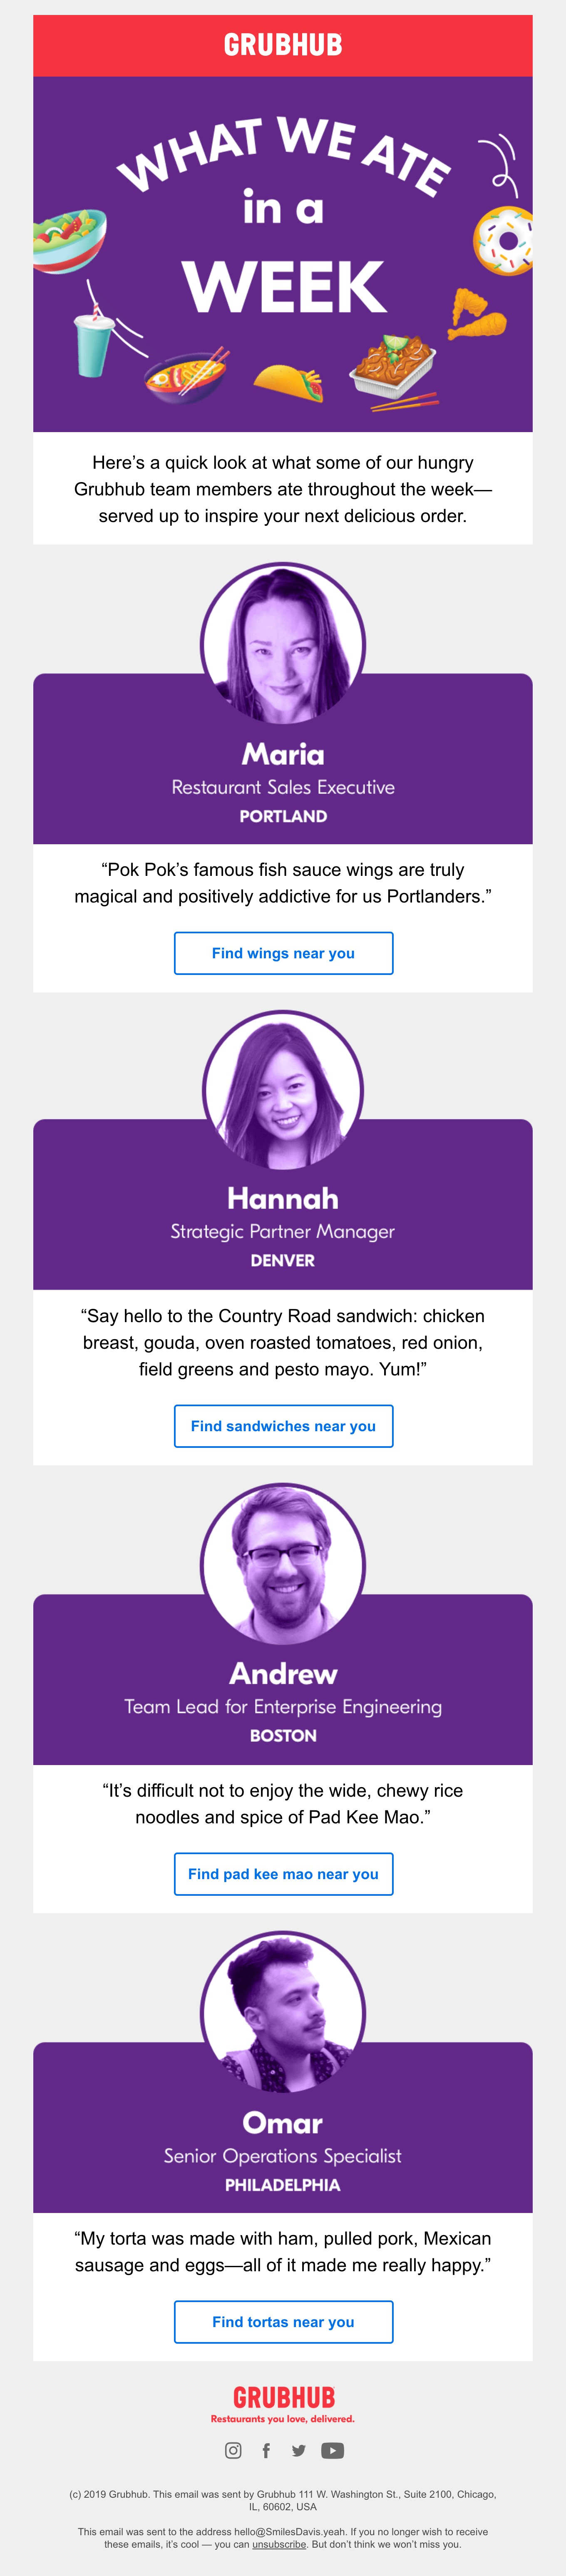 Email about what Grubhub team members ate in a week.